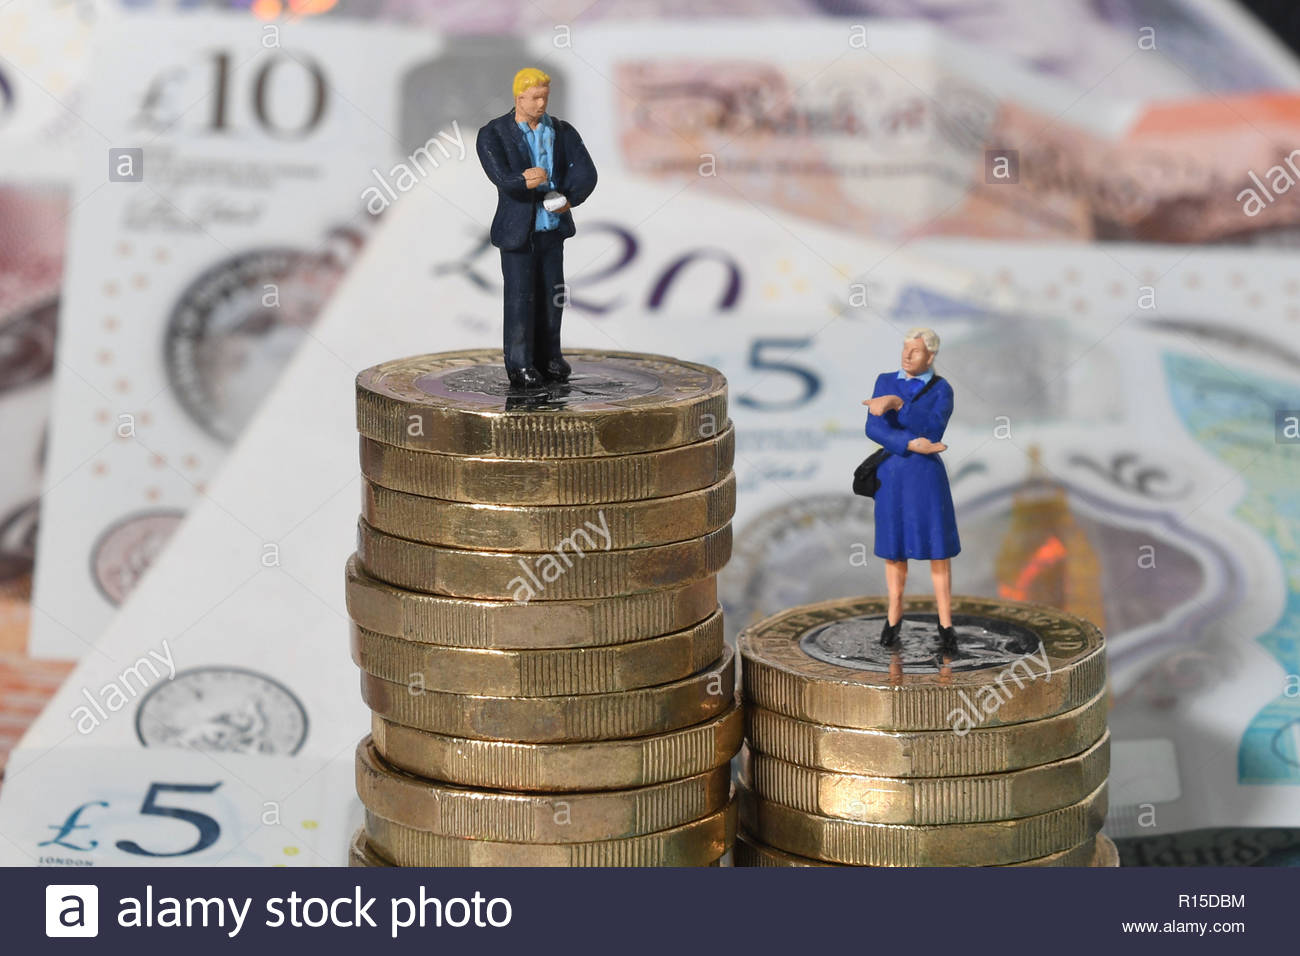 Embargoed to 0001 Saturday November 10 File photo dated 11/09/18 of models of a man and woman on a pile of coins and bank notes. Calls for more action to tackle the gender pay gap are being stepped up amid new research showing that women are more likely to be in low paid jobs. - Stock Image